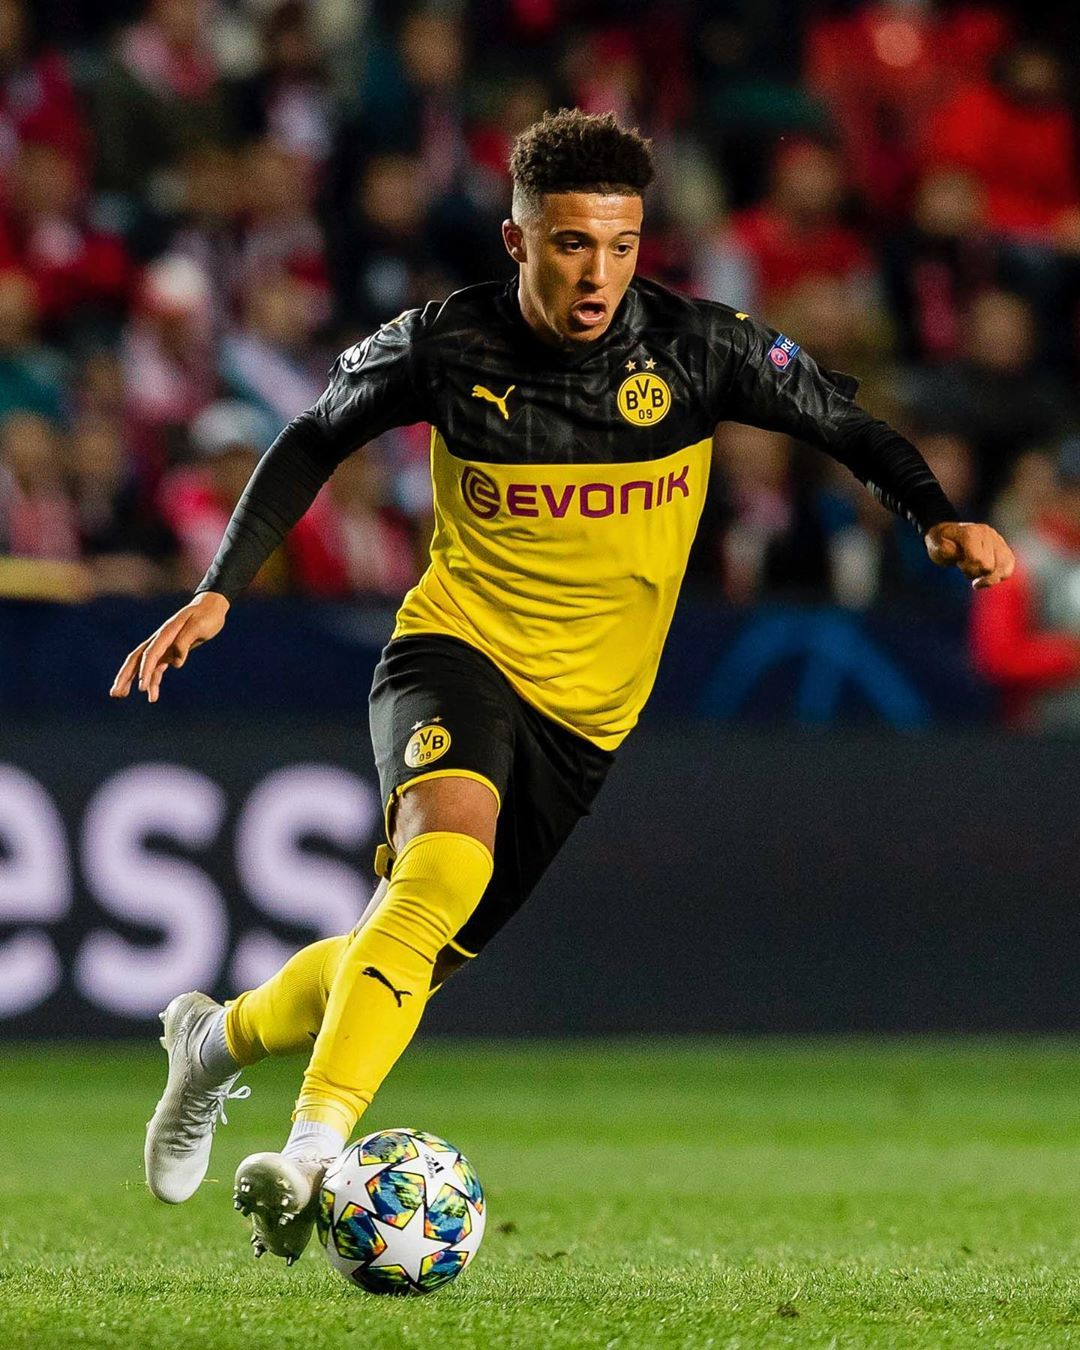 Borussia Dortmund On Instagram Single Player Action From Slabvb Bvb Borussiadortmund Championsleague In 2020 Football Players Images Sancho Borussia Dortmund